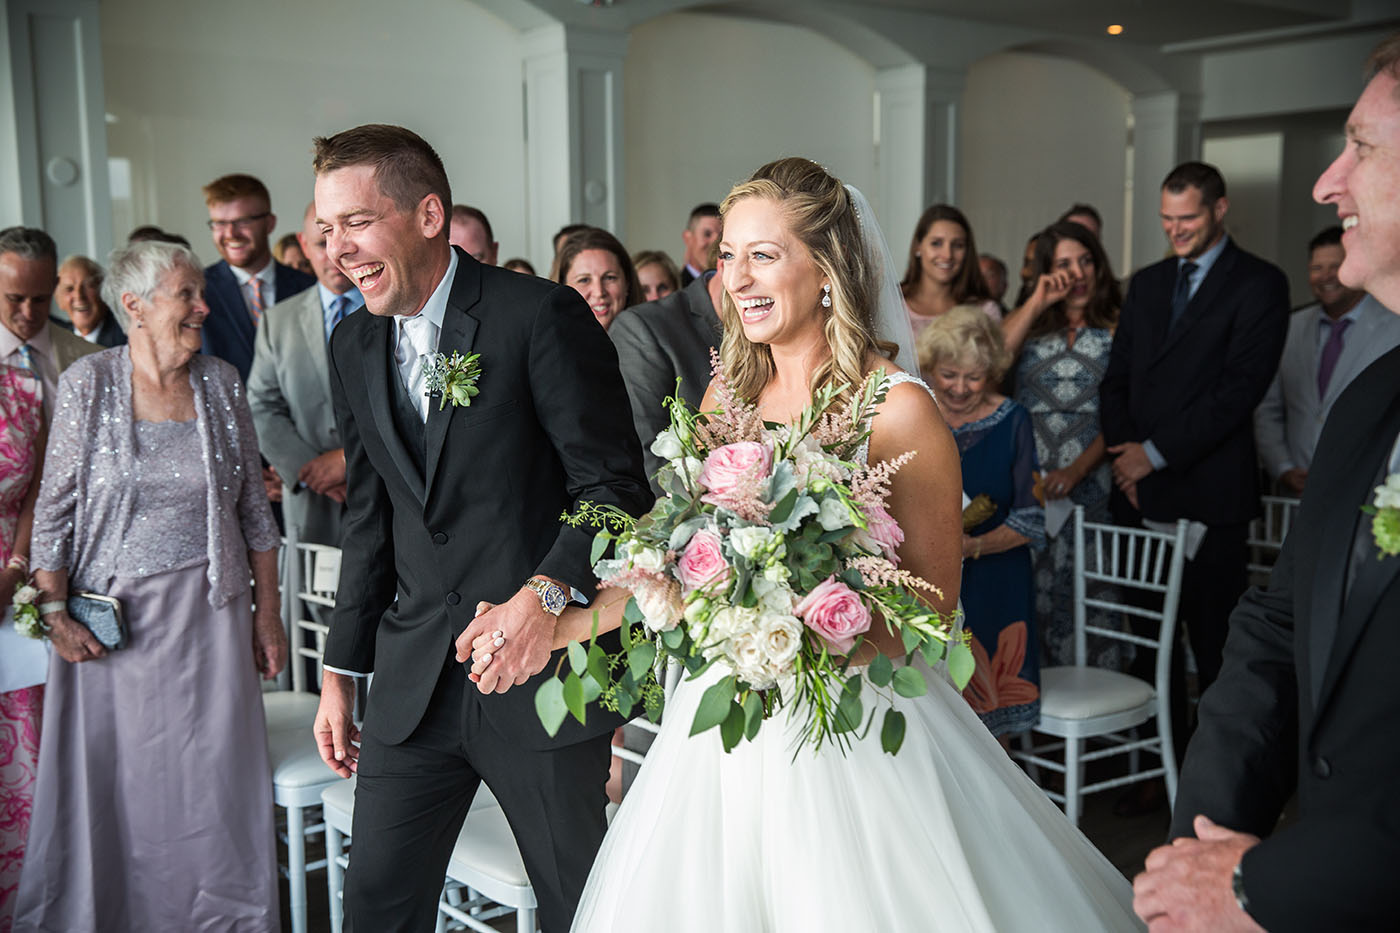 Bride and groom laughing while leaving ceremony